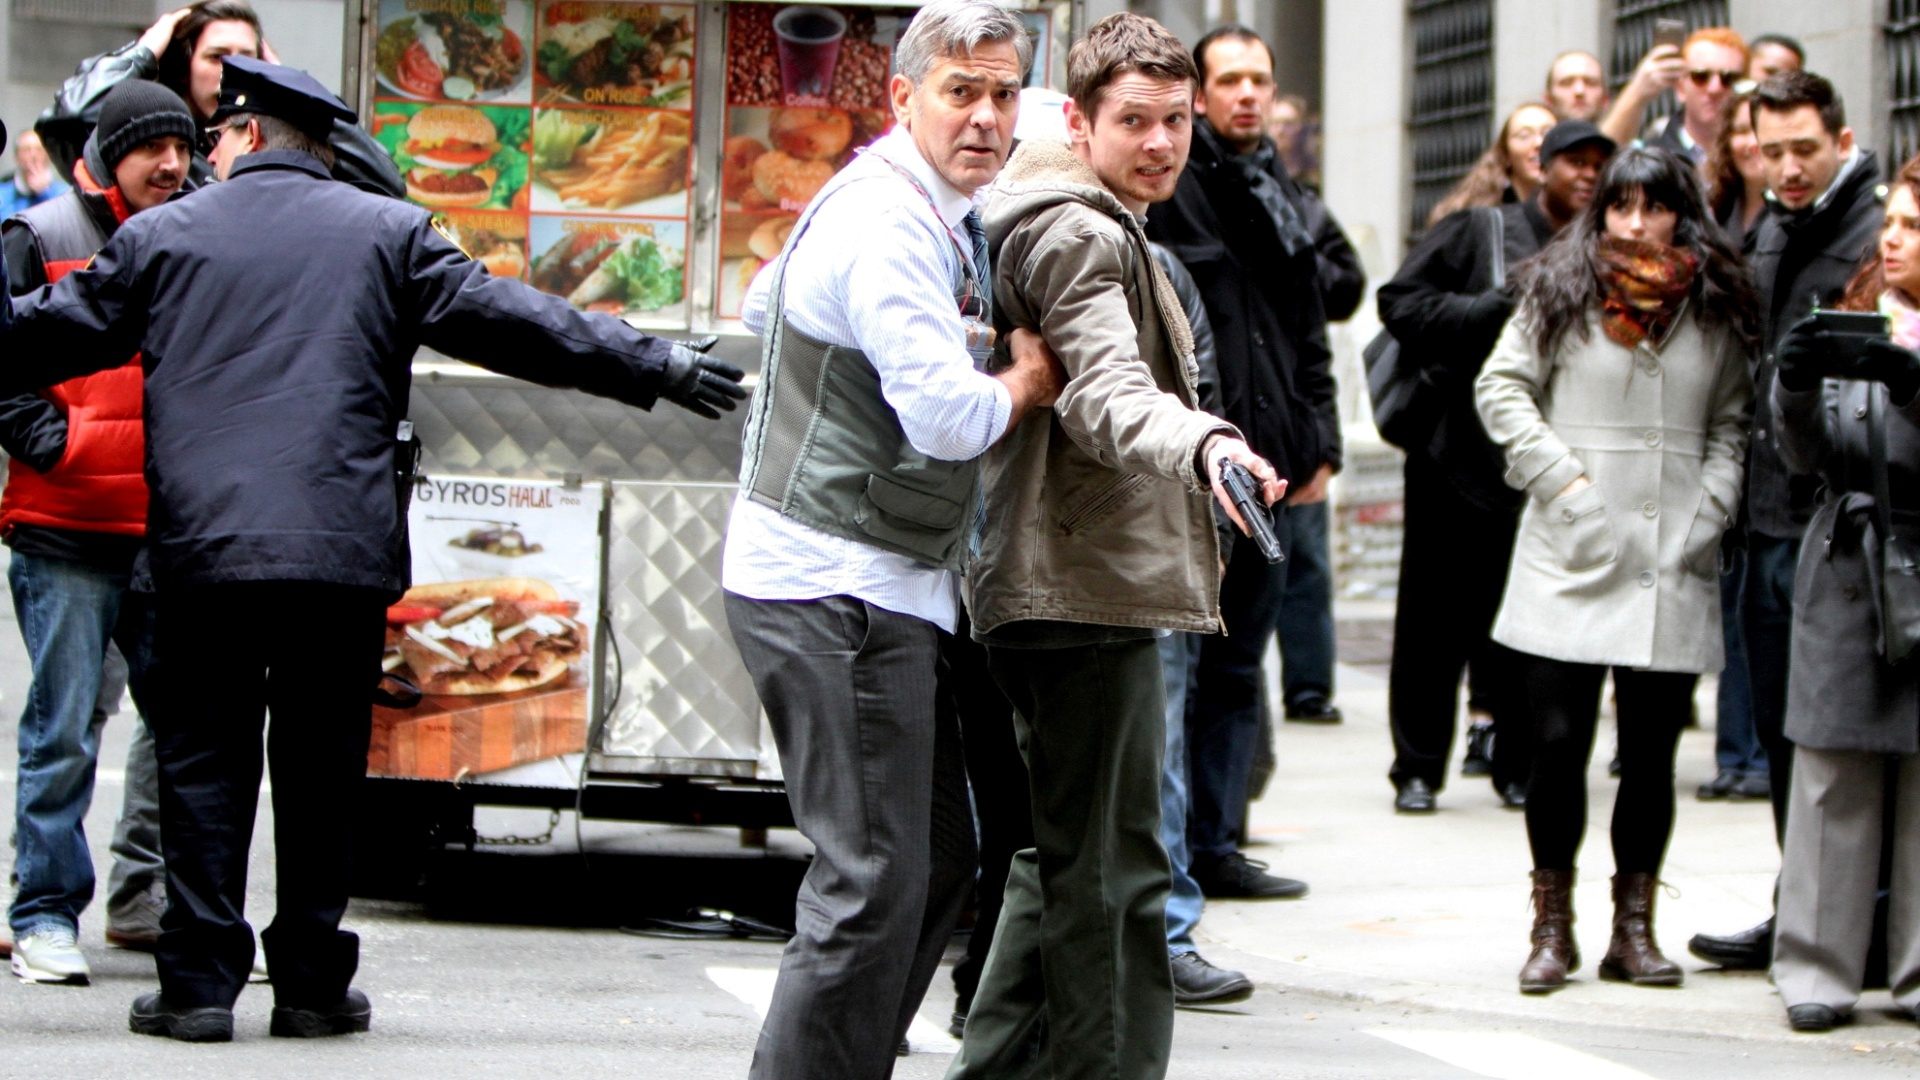 24abr2015---o-ator-george-clooney-grava-cenas-do-filme-money-monster-em-wall-street-em-nova-york-1429992353331_1920x1080